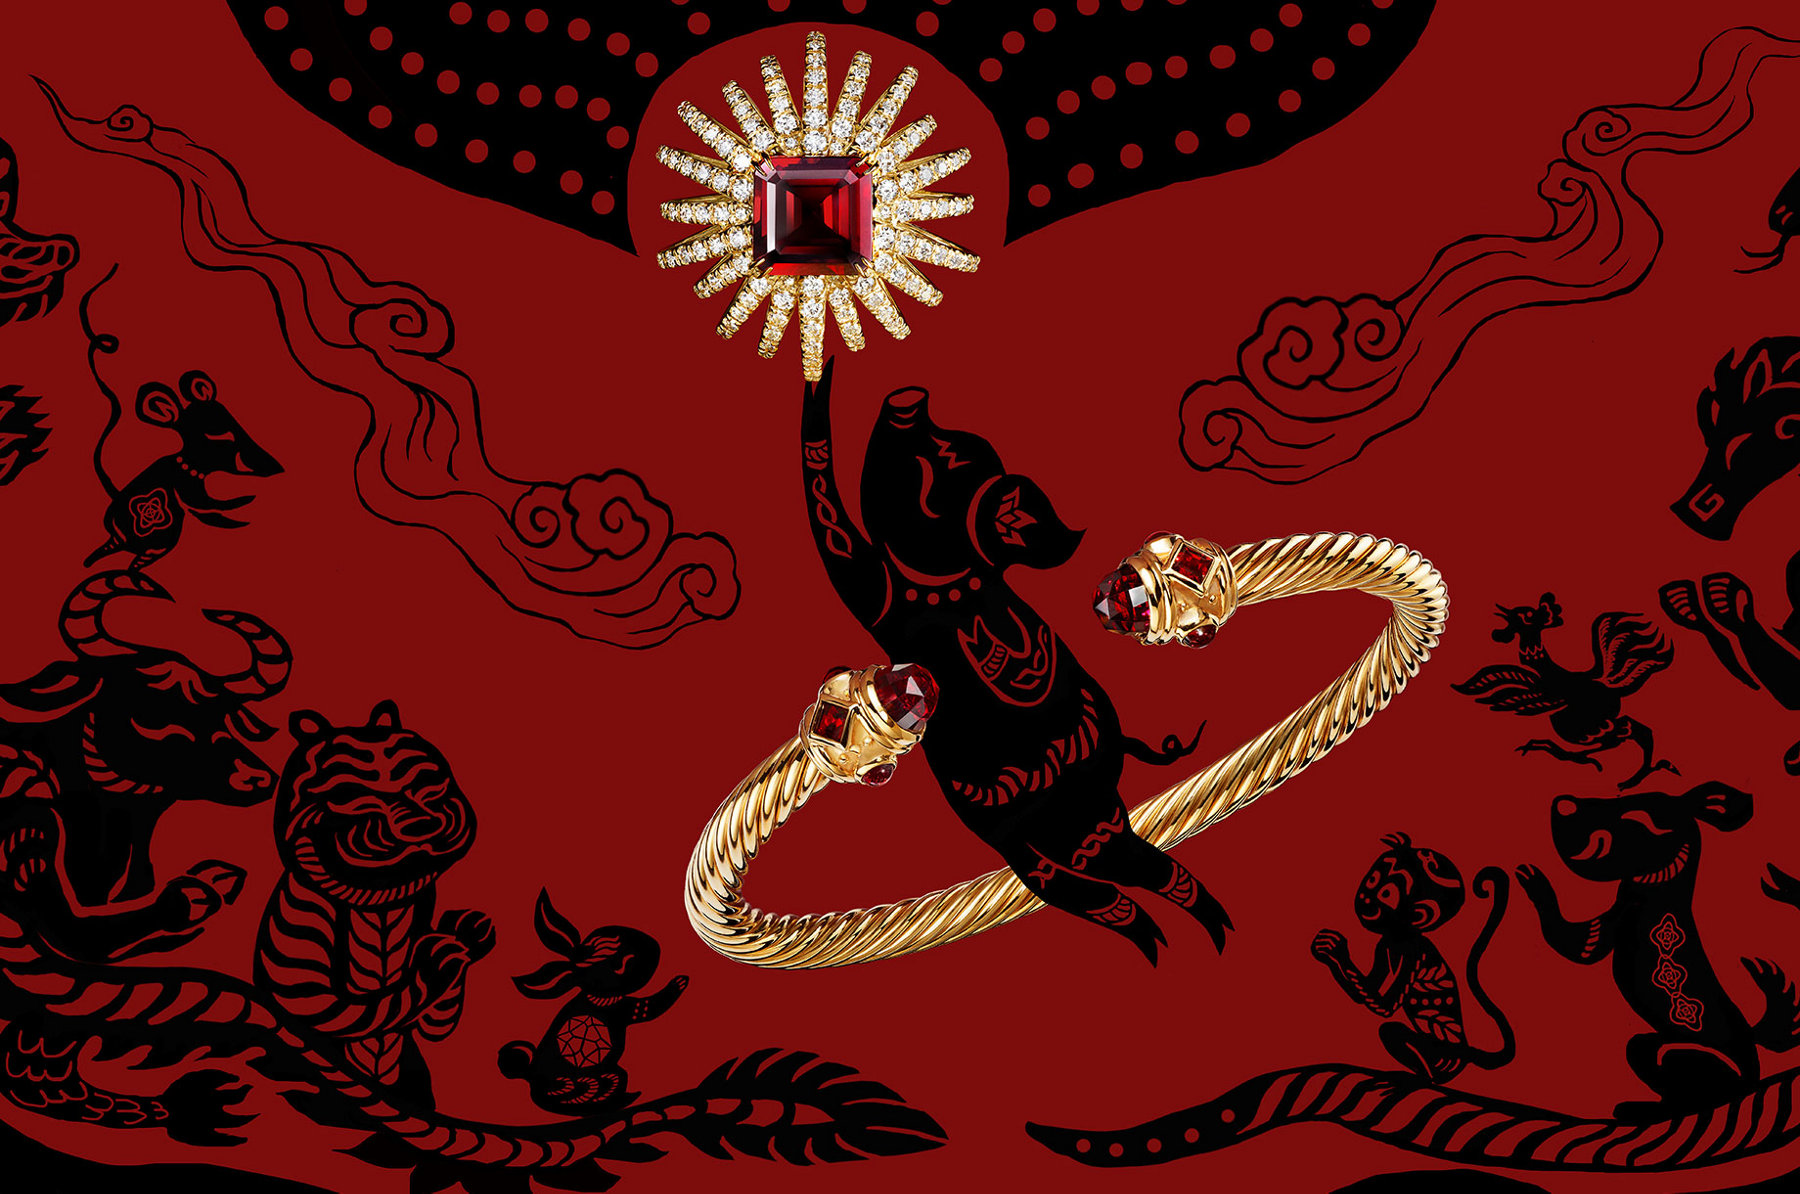 A red-and-black illustration with Chinese zodiac animals, including a pig. A David Yurman Starburst ring in 18K yellow gold with garnet and a Cable bracelet in 18K gold are placed on top of the illustration.